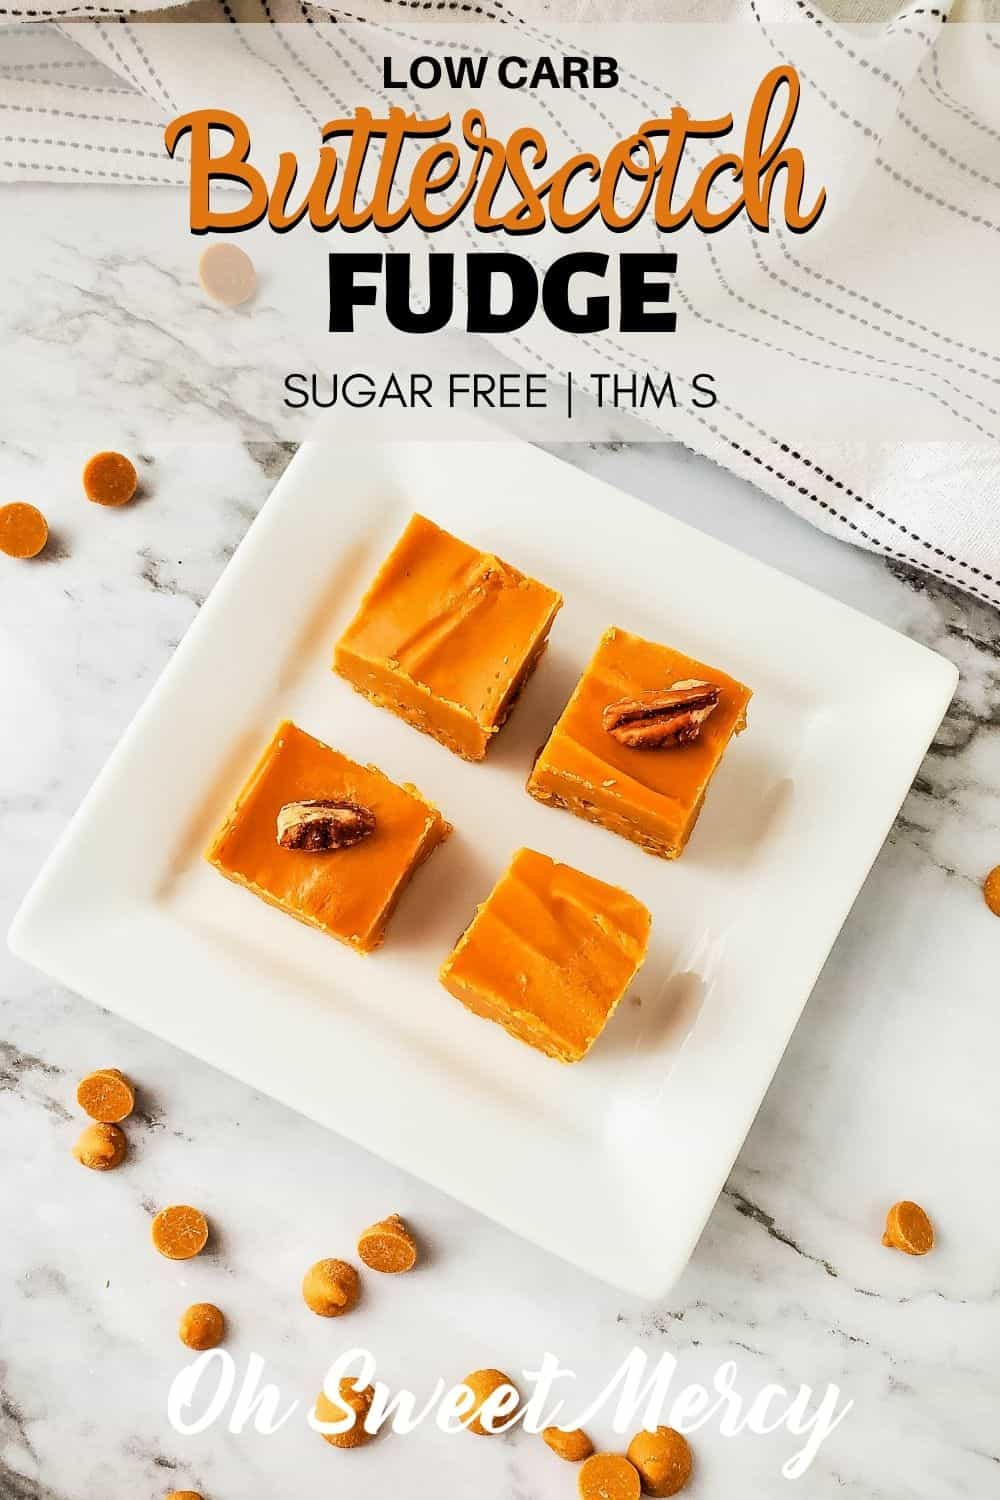 This easy, silky, rich, Low Carb Butterscotch Fudge takes just 4 (or 5 if you like nutty fudge) ingredients and about an hour to make. Keep it on hand to keep temptation at bay. #lowcarb #sugarfree #thm #homemade #fudge #keto @ohsweetmercy